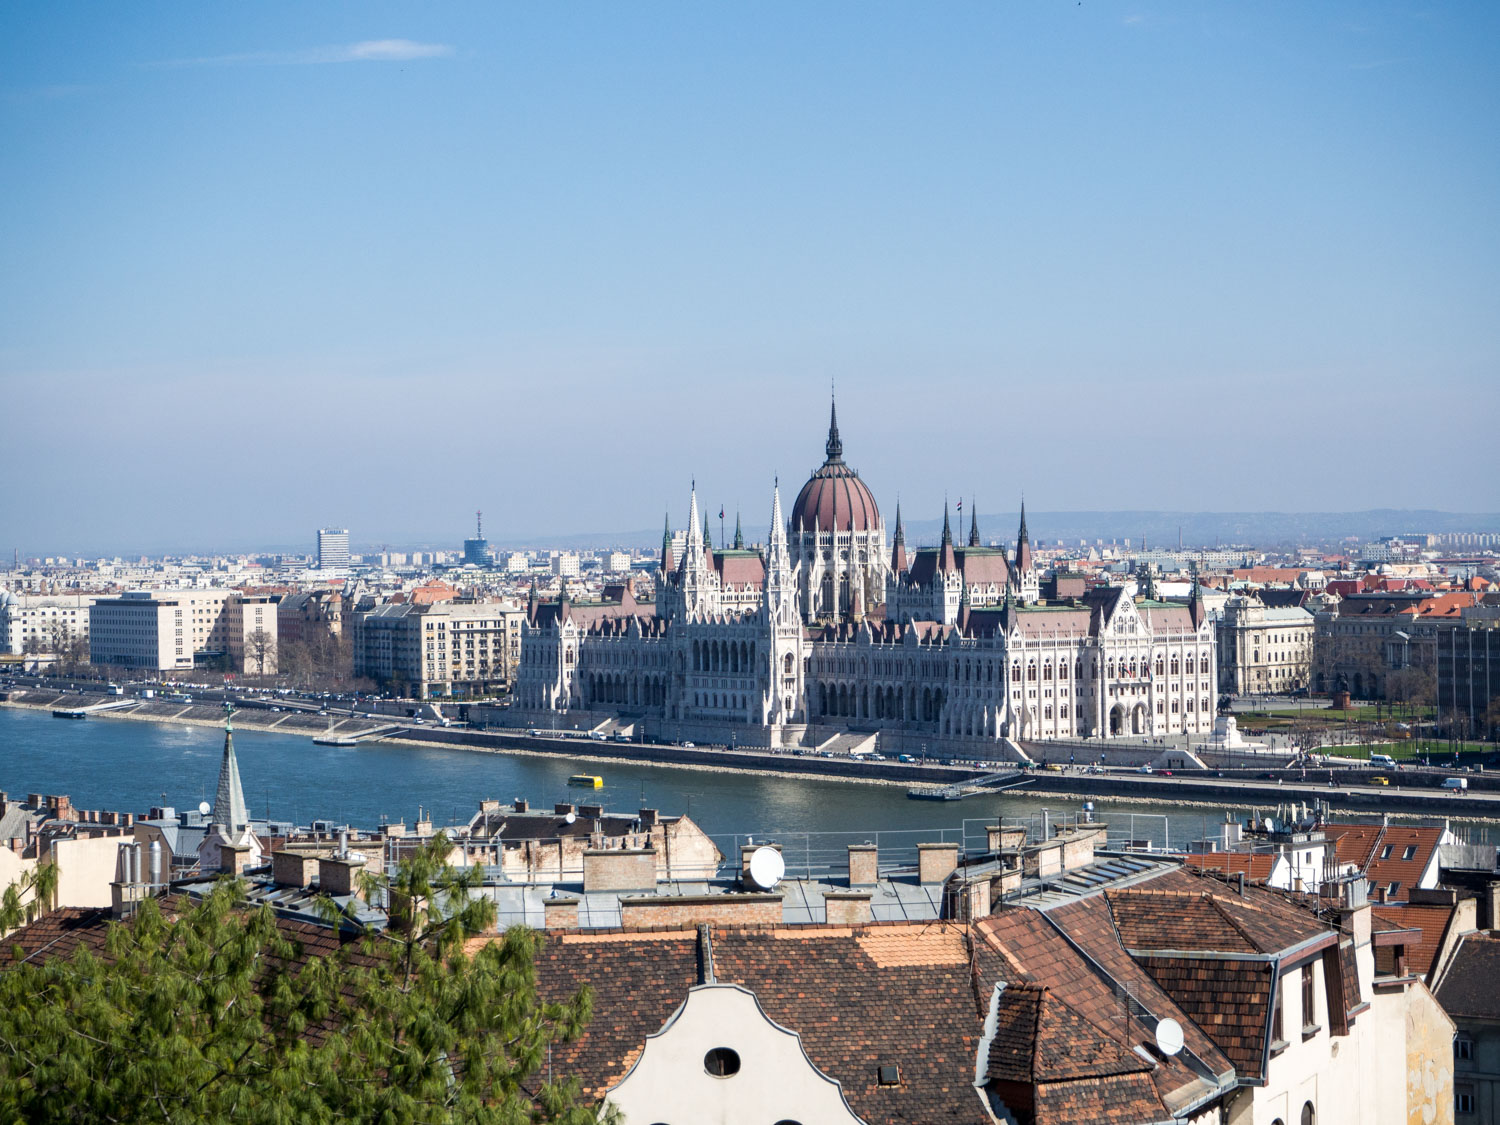 From the Buda side of the river, Hungary's Parliament looks great.